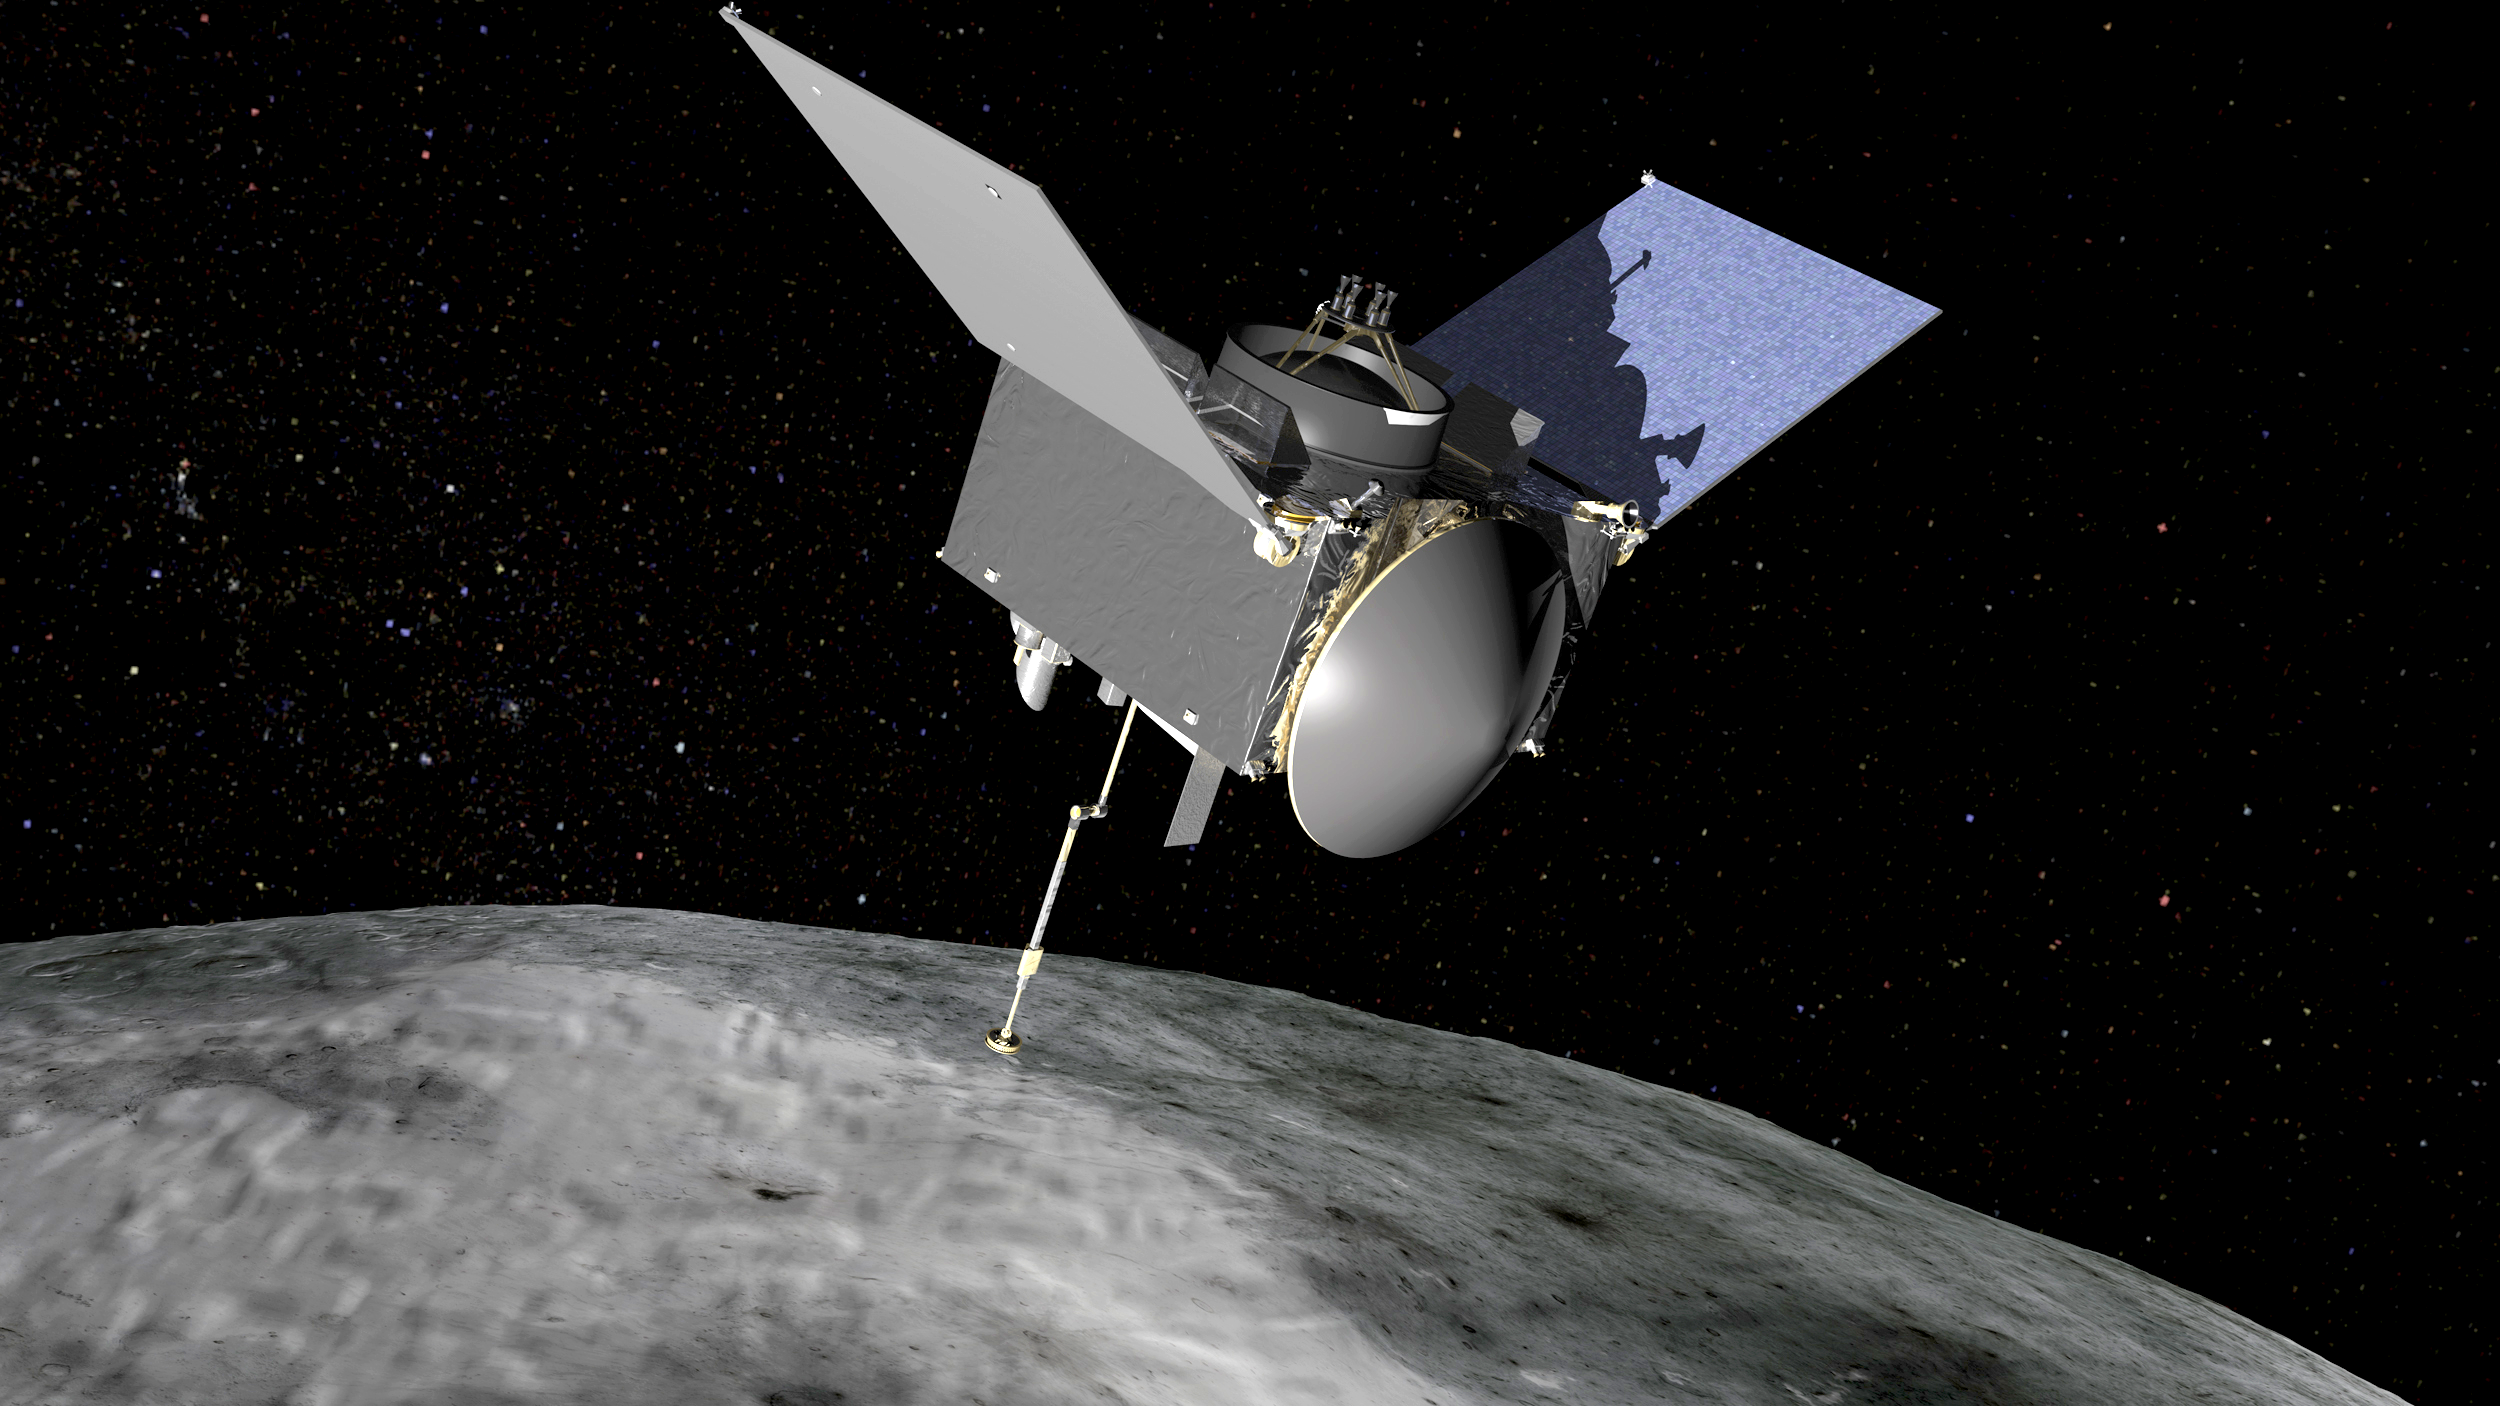 An artist's impression of the OSIRIS-REx probe sampling the asteroid Bennu.